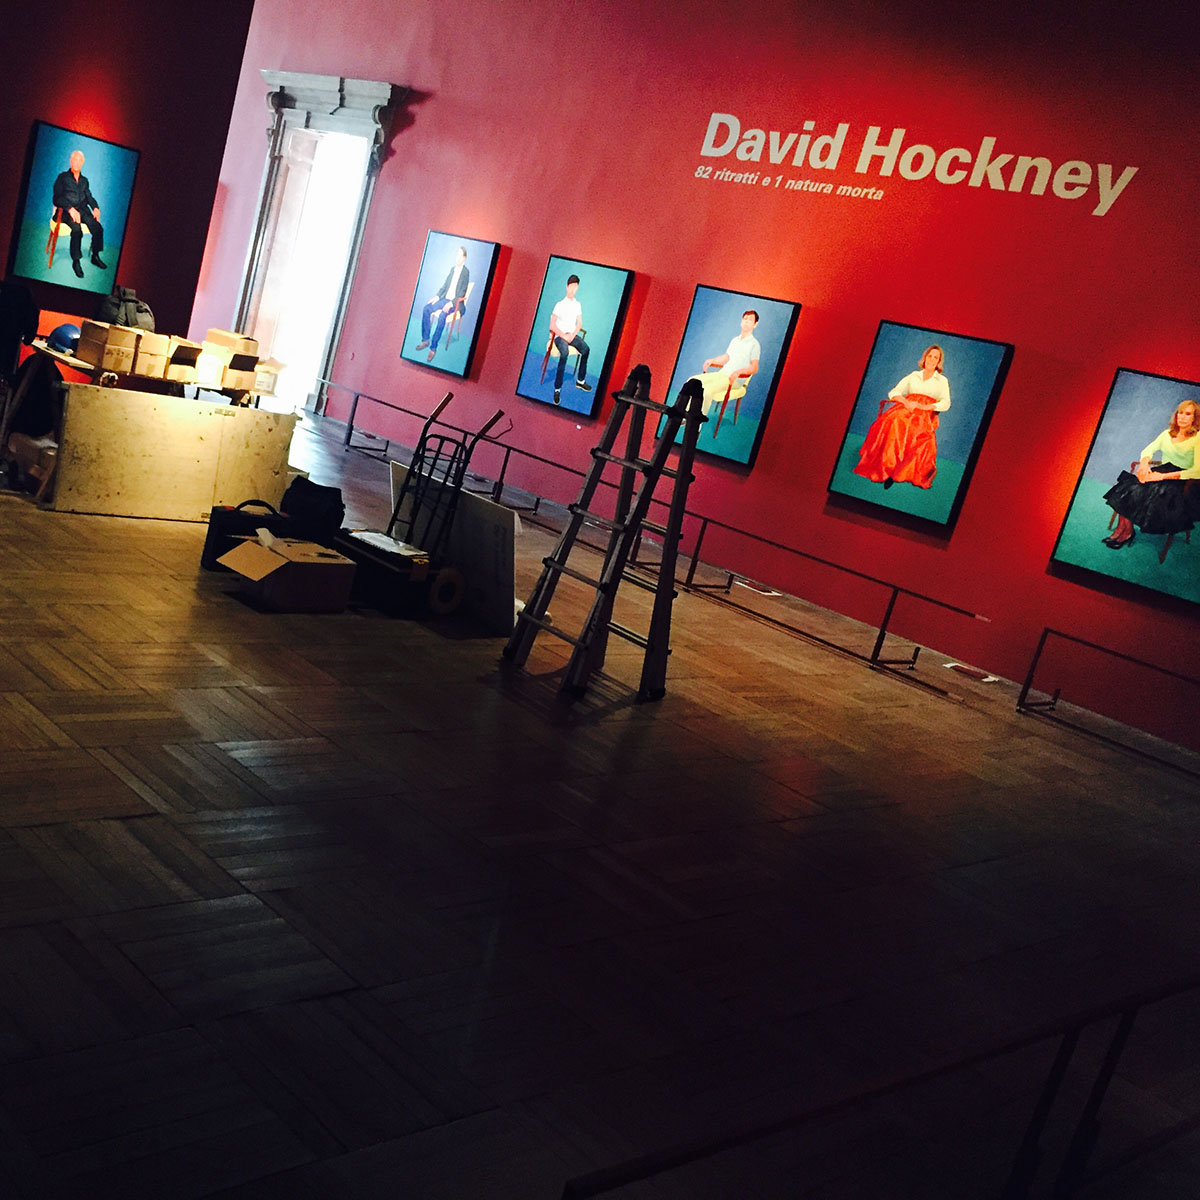 David-Hockney82-Portraits-and-1-Still-life-003